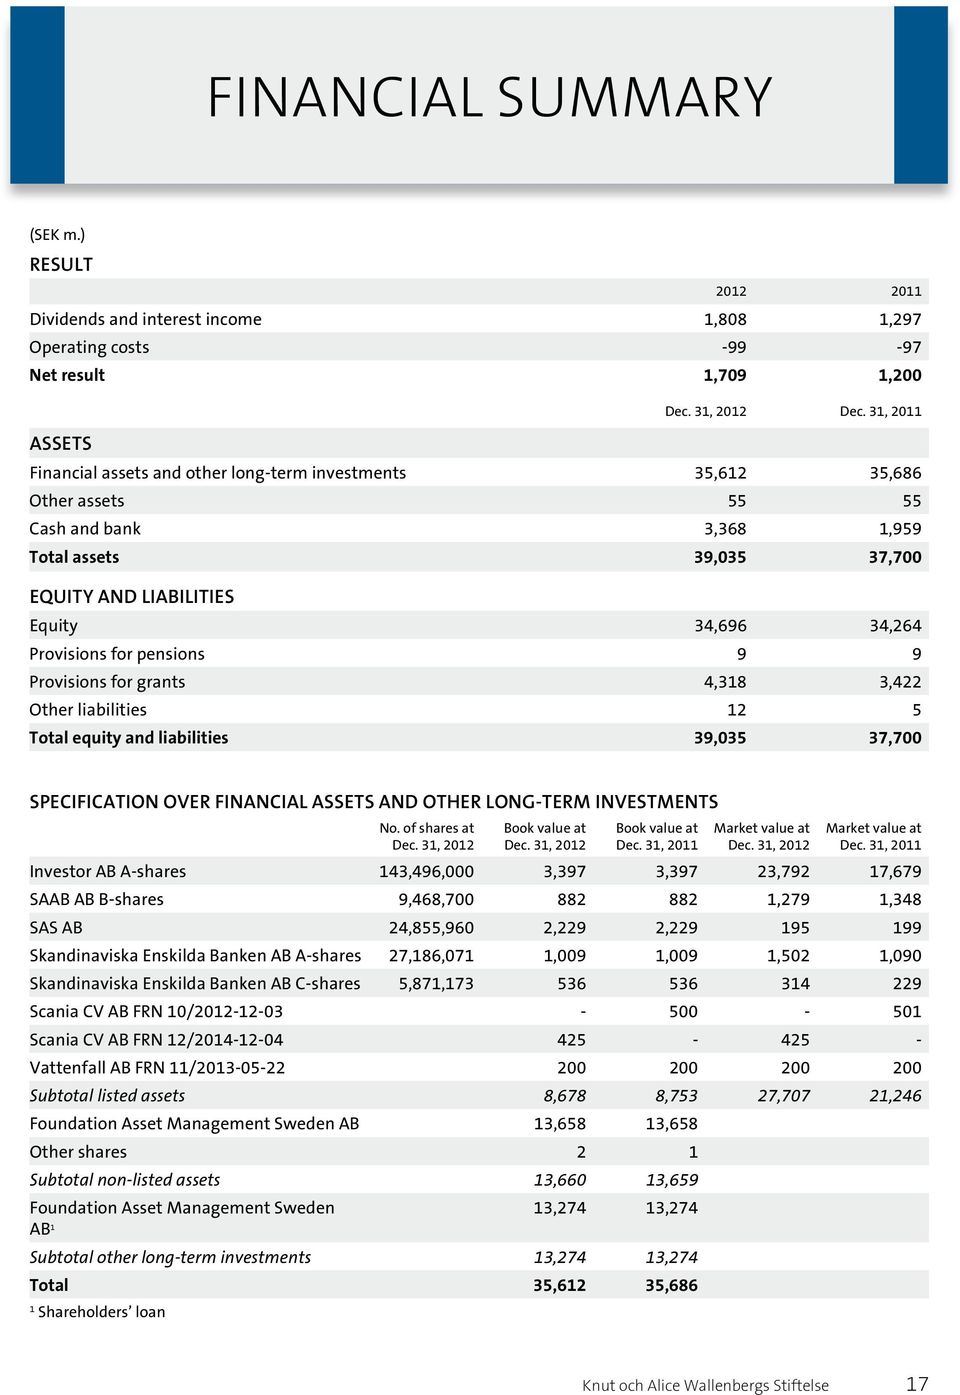 Provisions for pensions 9 9 Provisions for grants 4,318 3,422 Other liabilities 12 5 Total equity and liabilities 39,035 37,700 Specification over financial assets and other long-term investments No.